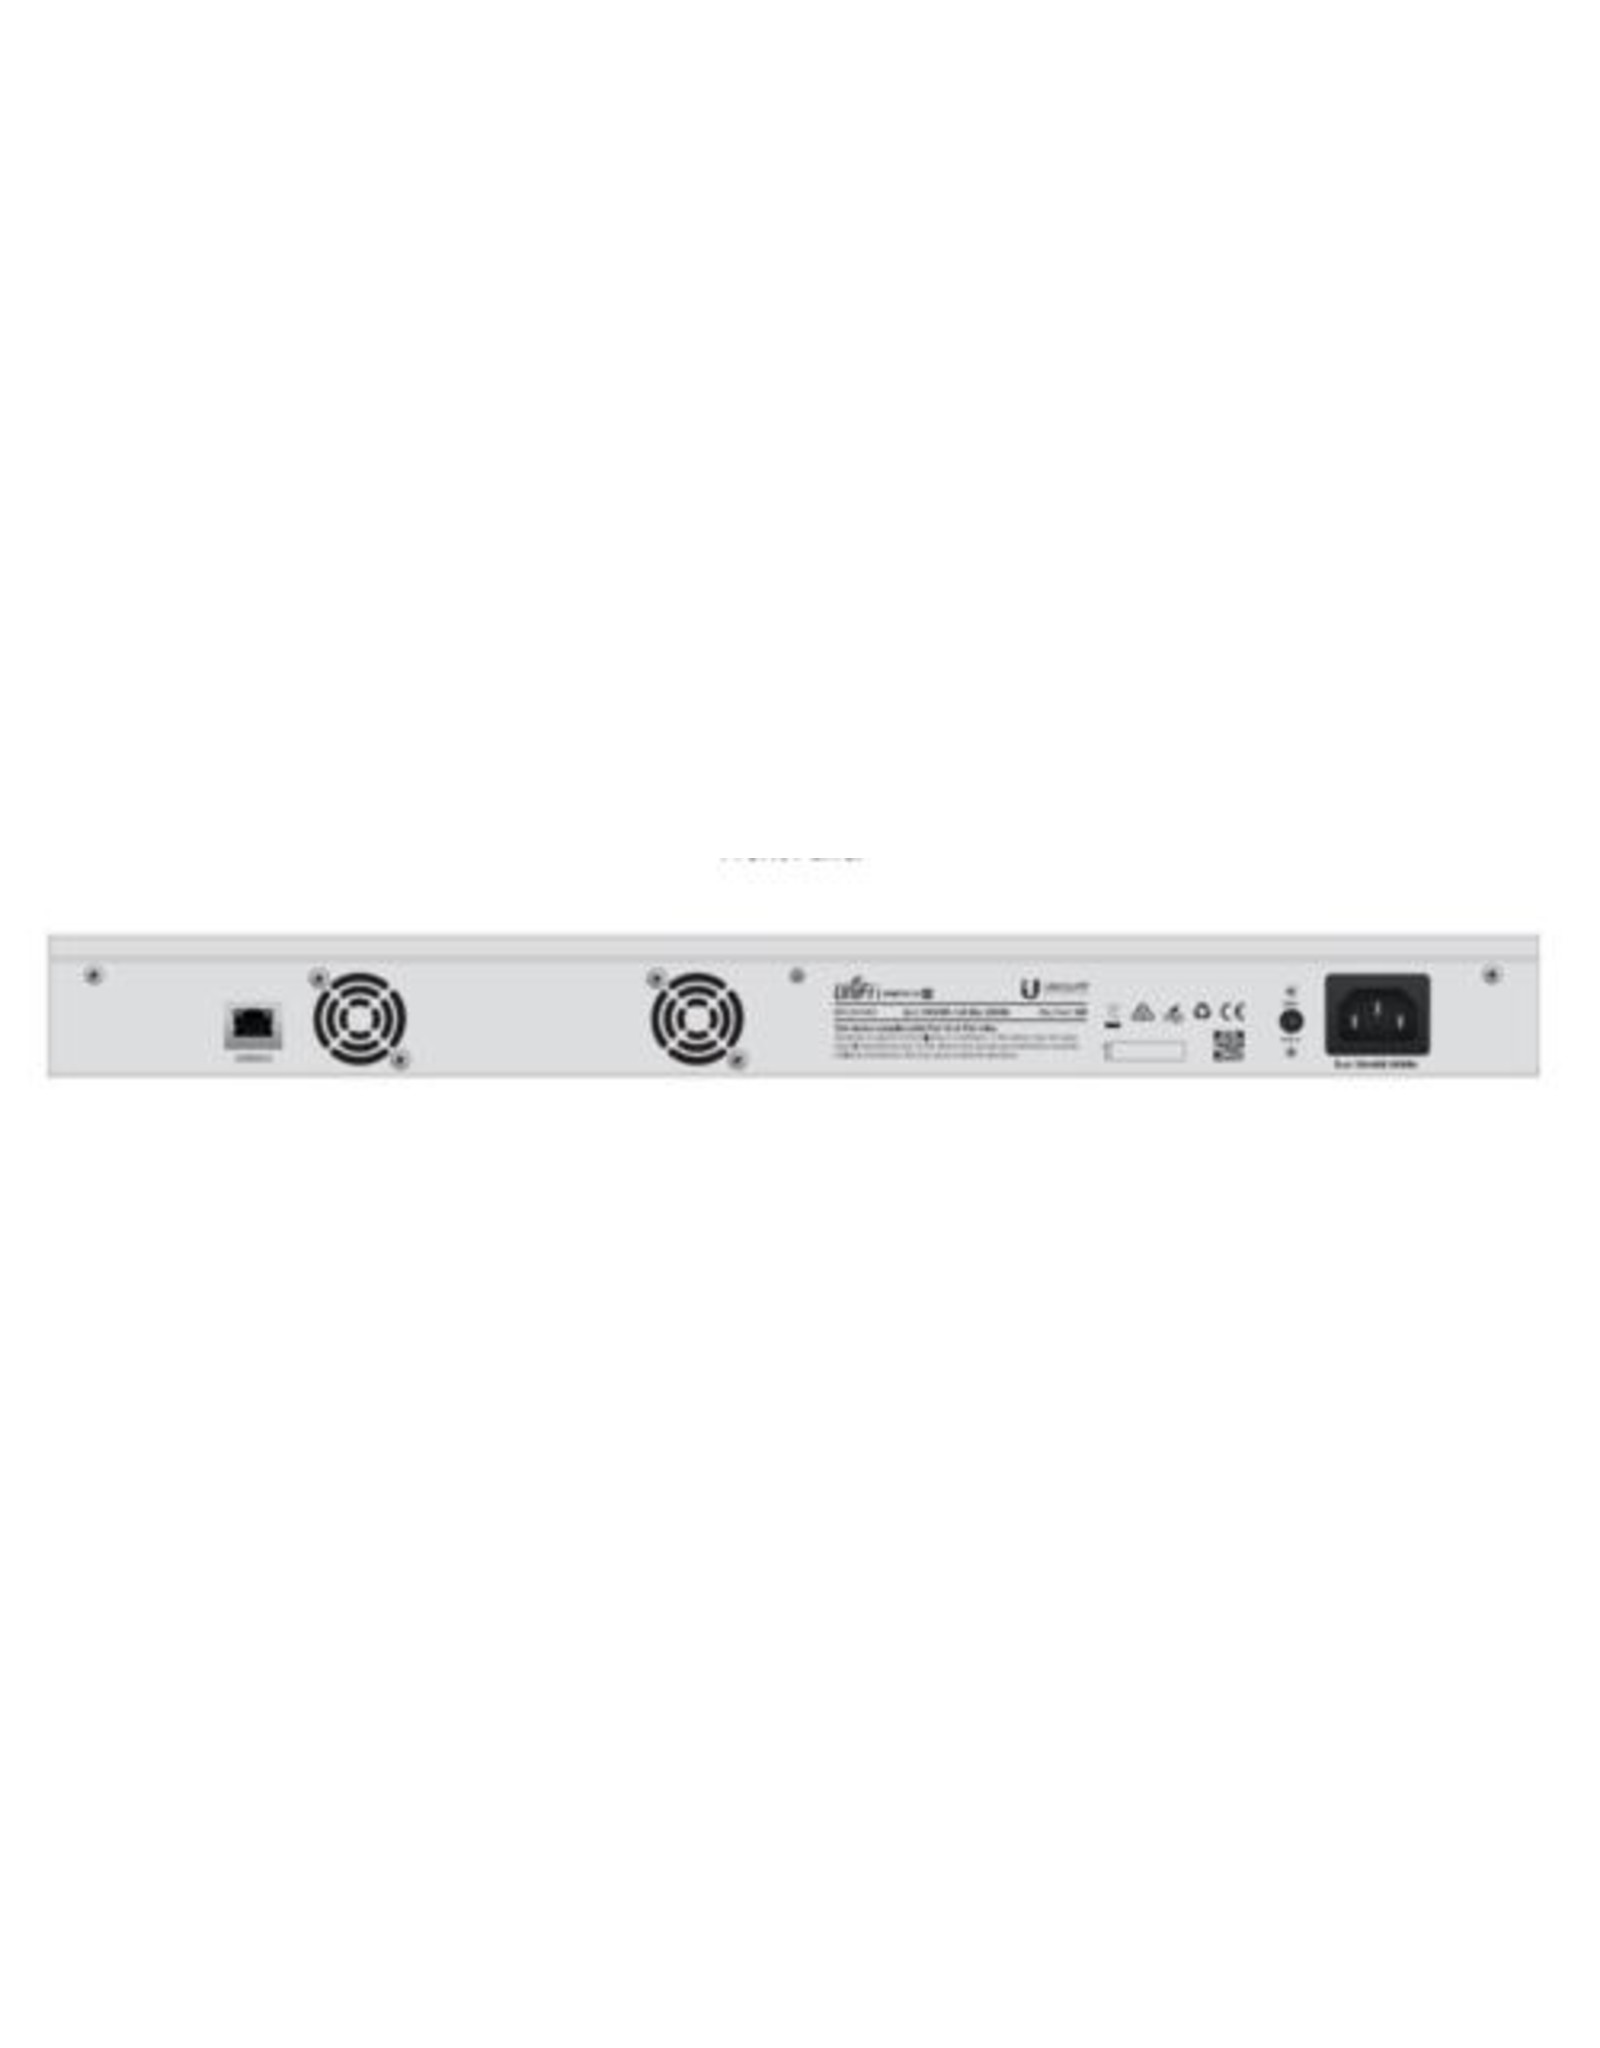 Ubiquiti UniFi Managed Gigabit Ethernet PoE 16-ports Switch